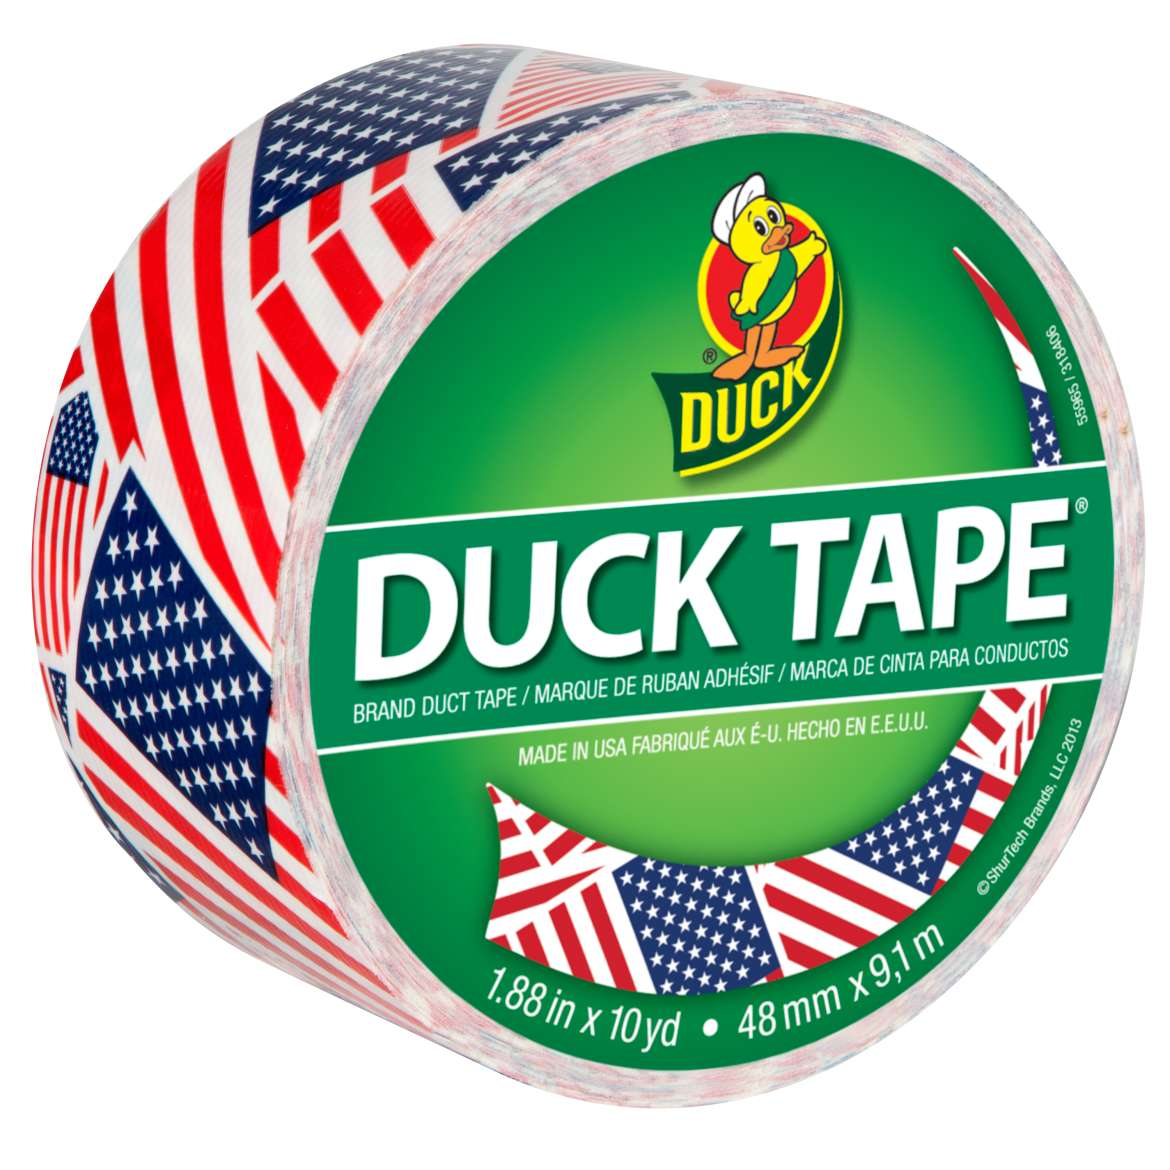 Printed Duck Tape® Brand Duct Tape - U.S. Flag, 1.88 in. x 10 yd. Image